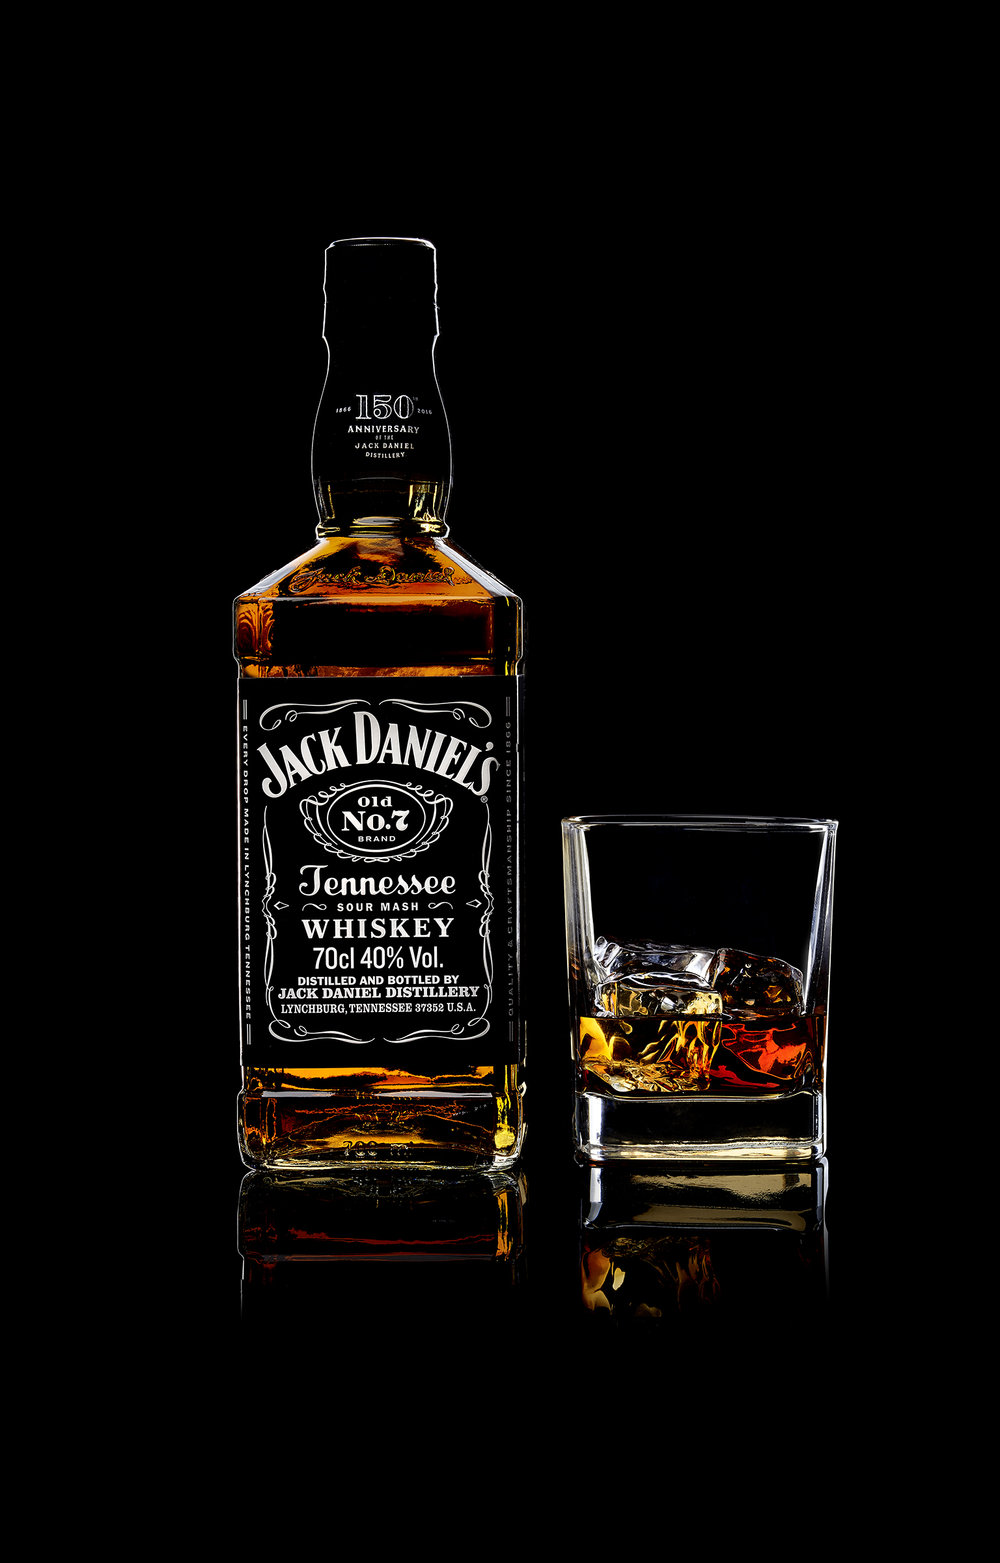 """Werbung, """"Tennessee Whisky"""""""